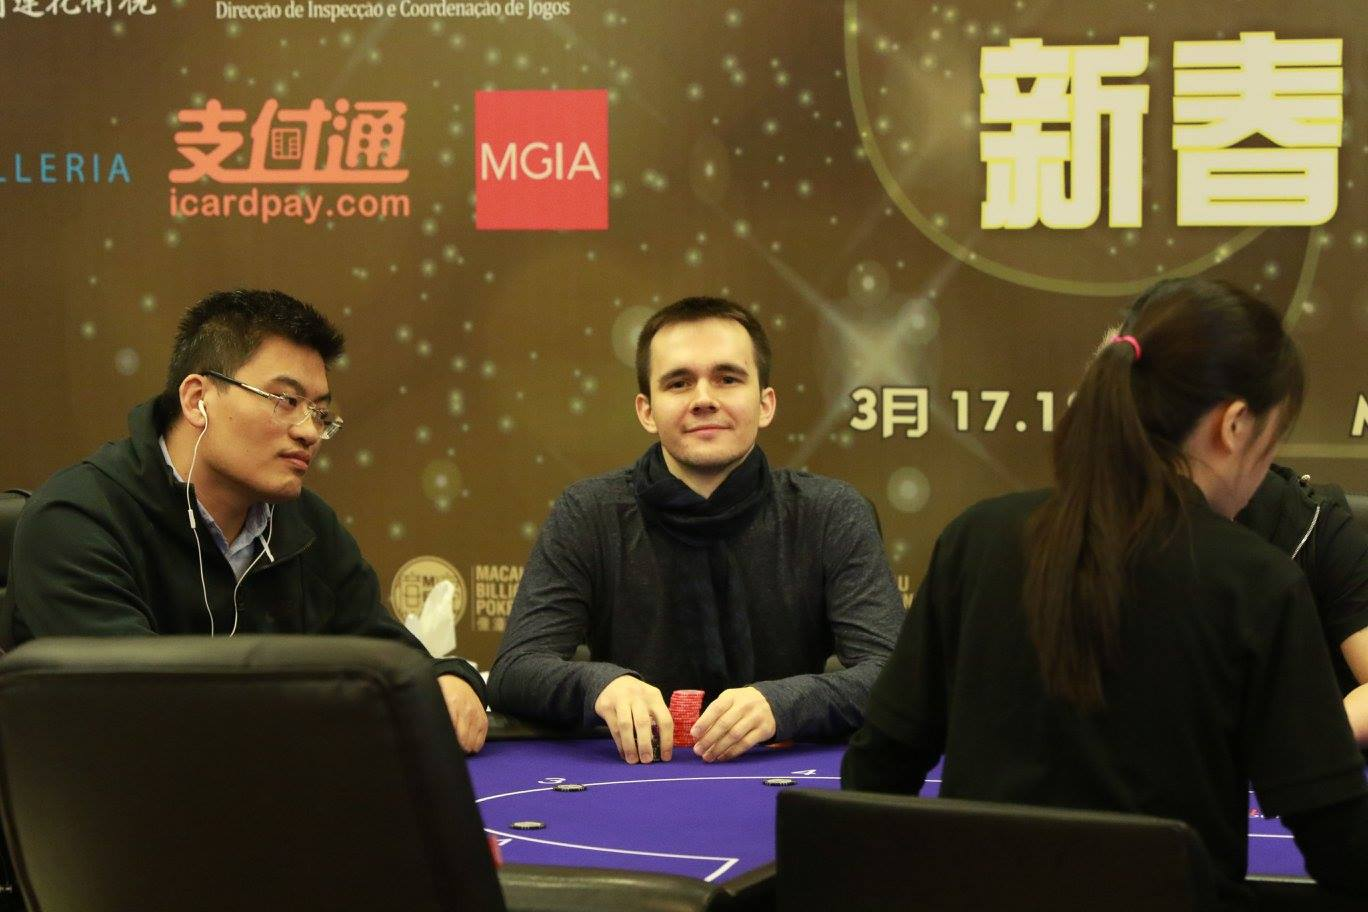 Белорус Бодяковский переиграл Двана в $65k MBP Super High Roller